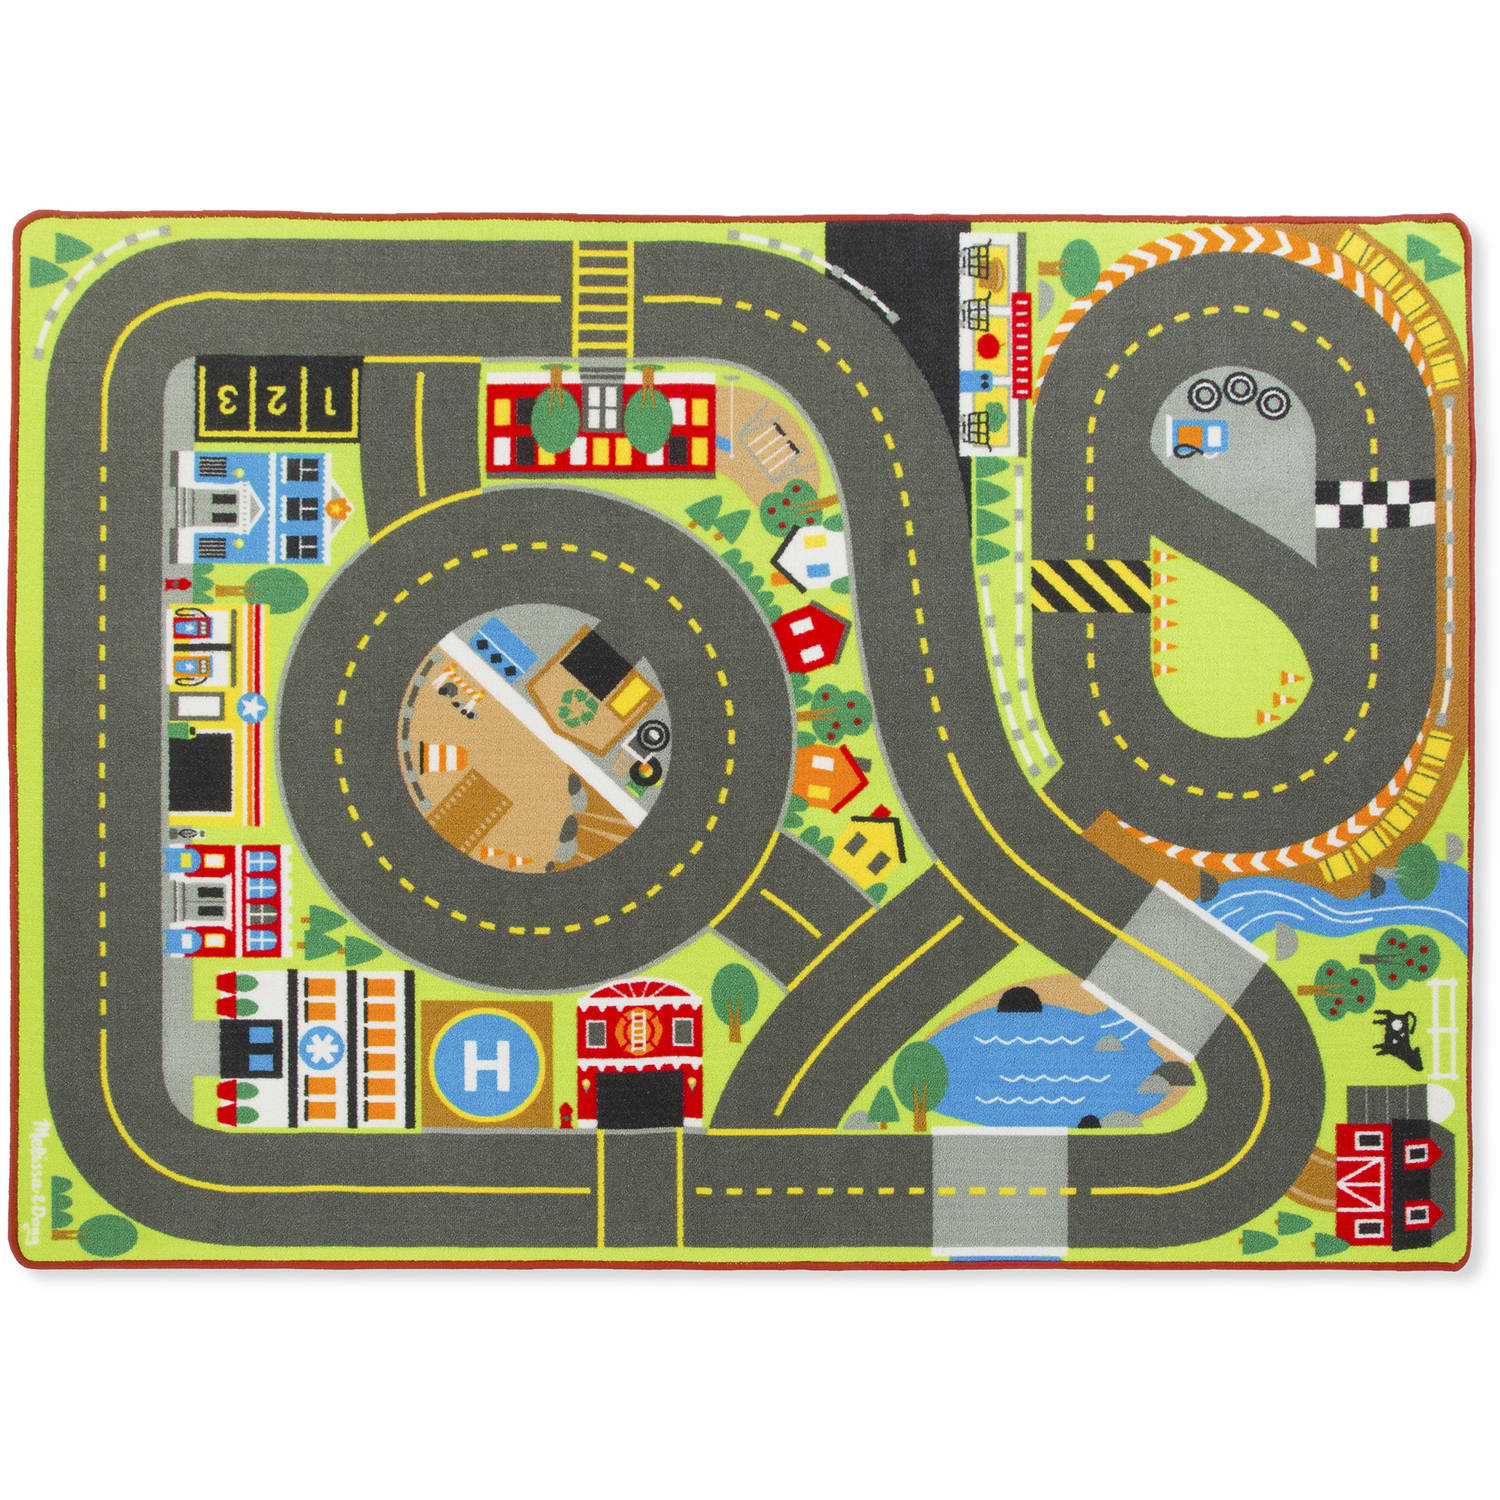 Melissa & Doug Jumbo Roadway Activity Rug With 4 Wooden Traffic Signs (79 x 58 inches) by Generic